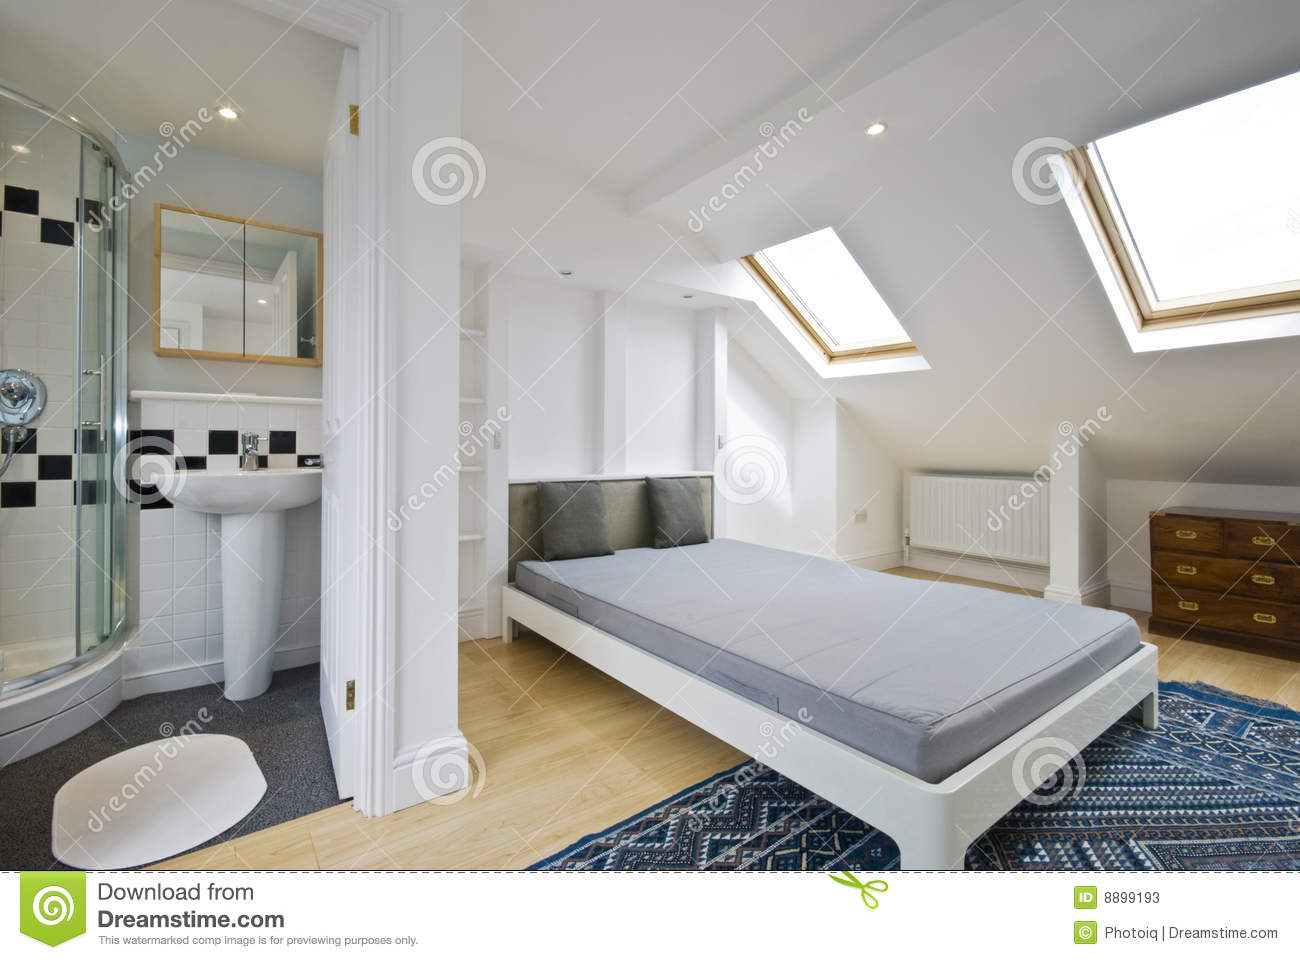 Bedroom with en suite bathroom stock photos image 8899193 - Creer une salle de bain dans une chambre ...